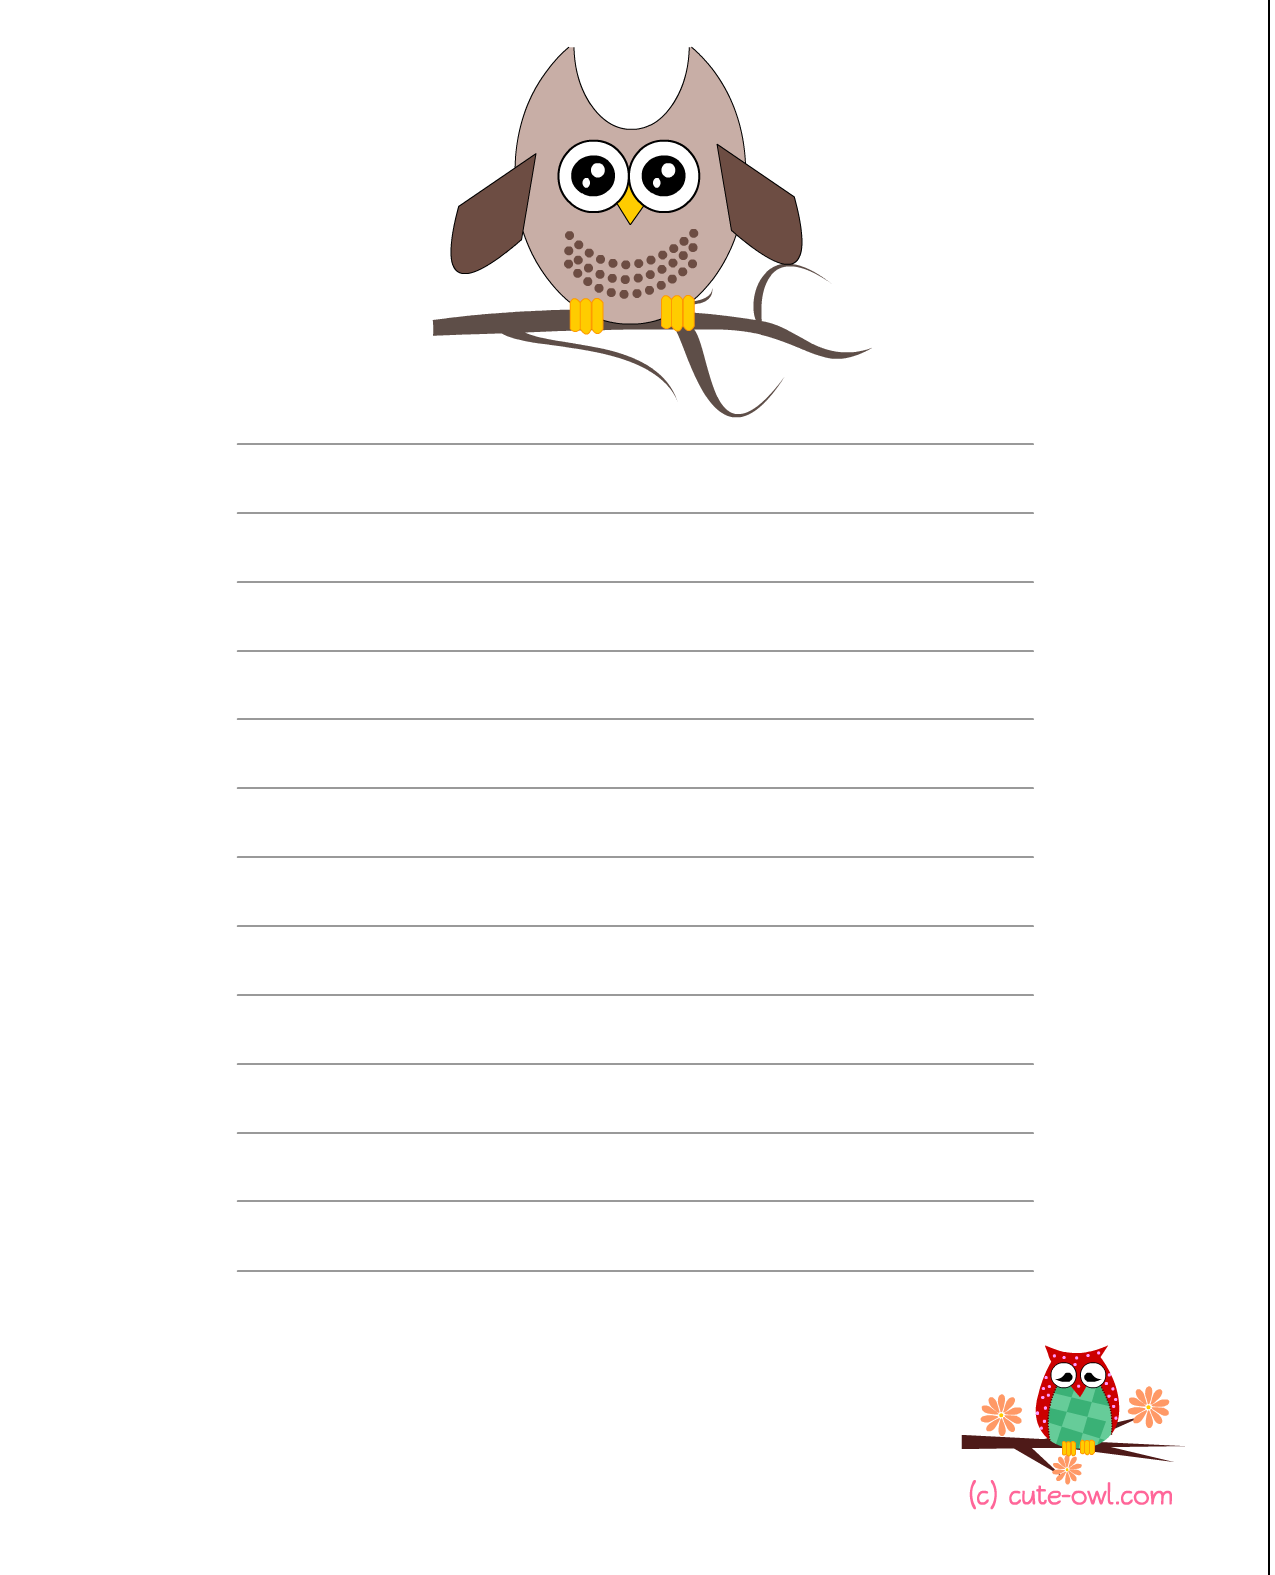 Cute Owl Owl Theme Baby Shower Games